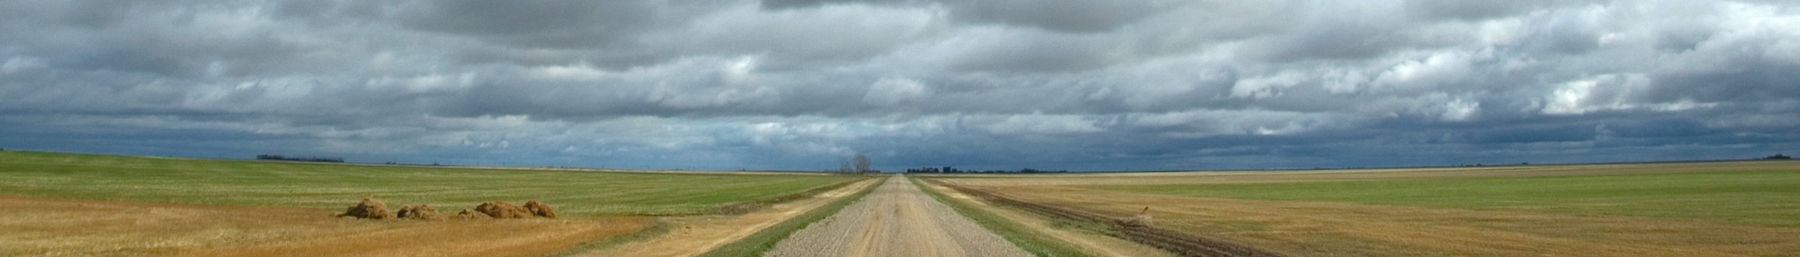 Road through the prairie in Southern Saskatchewan